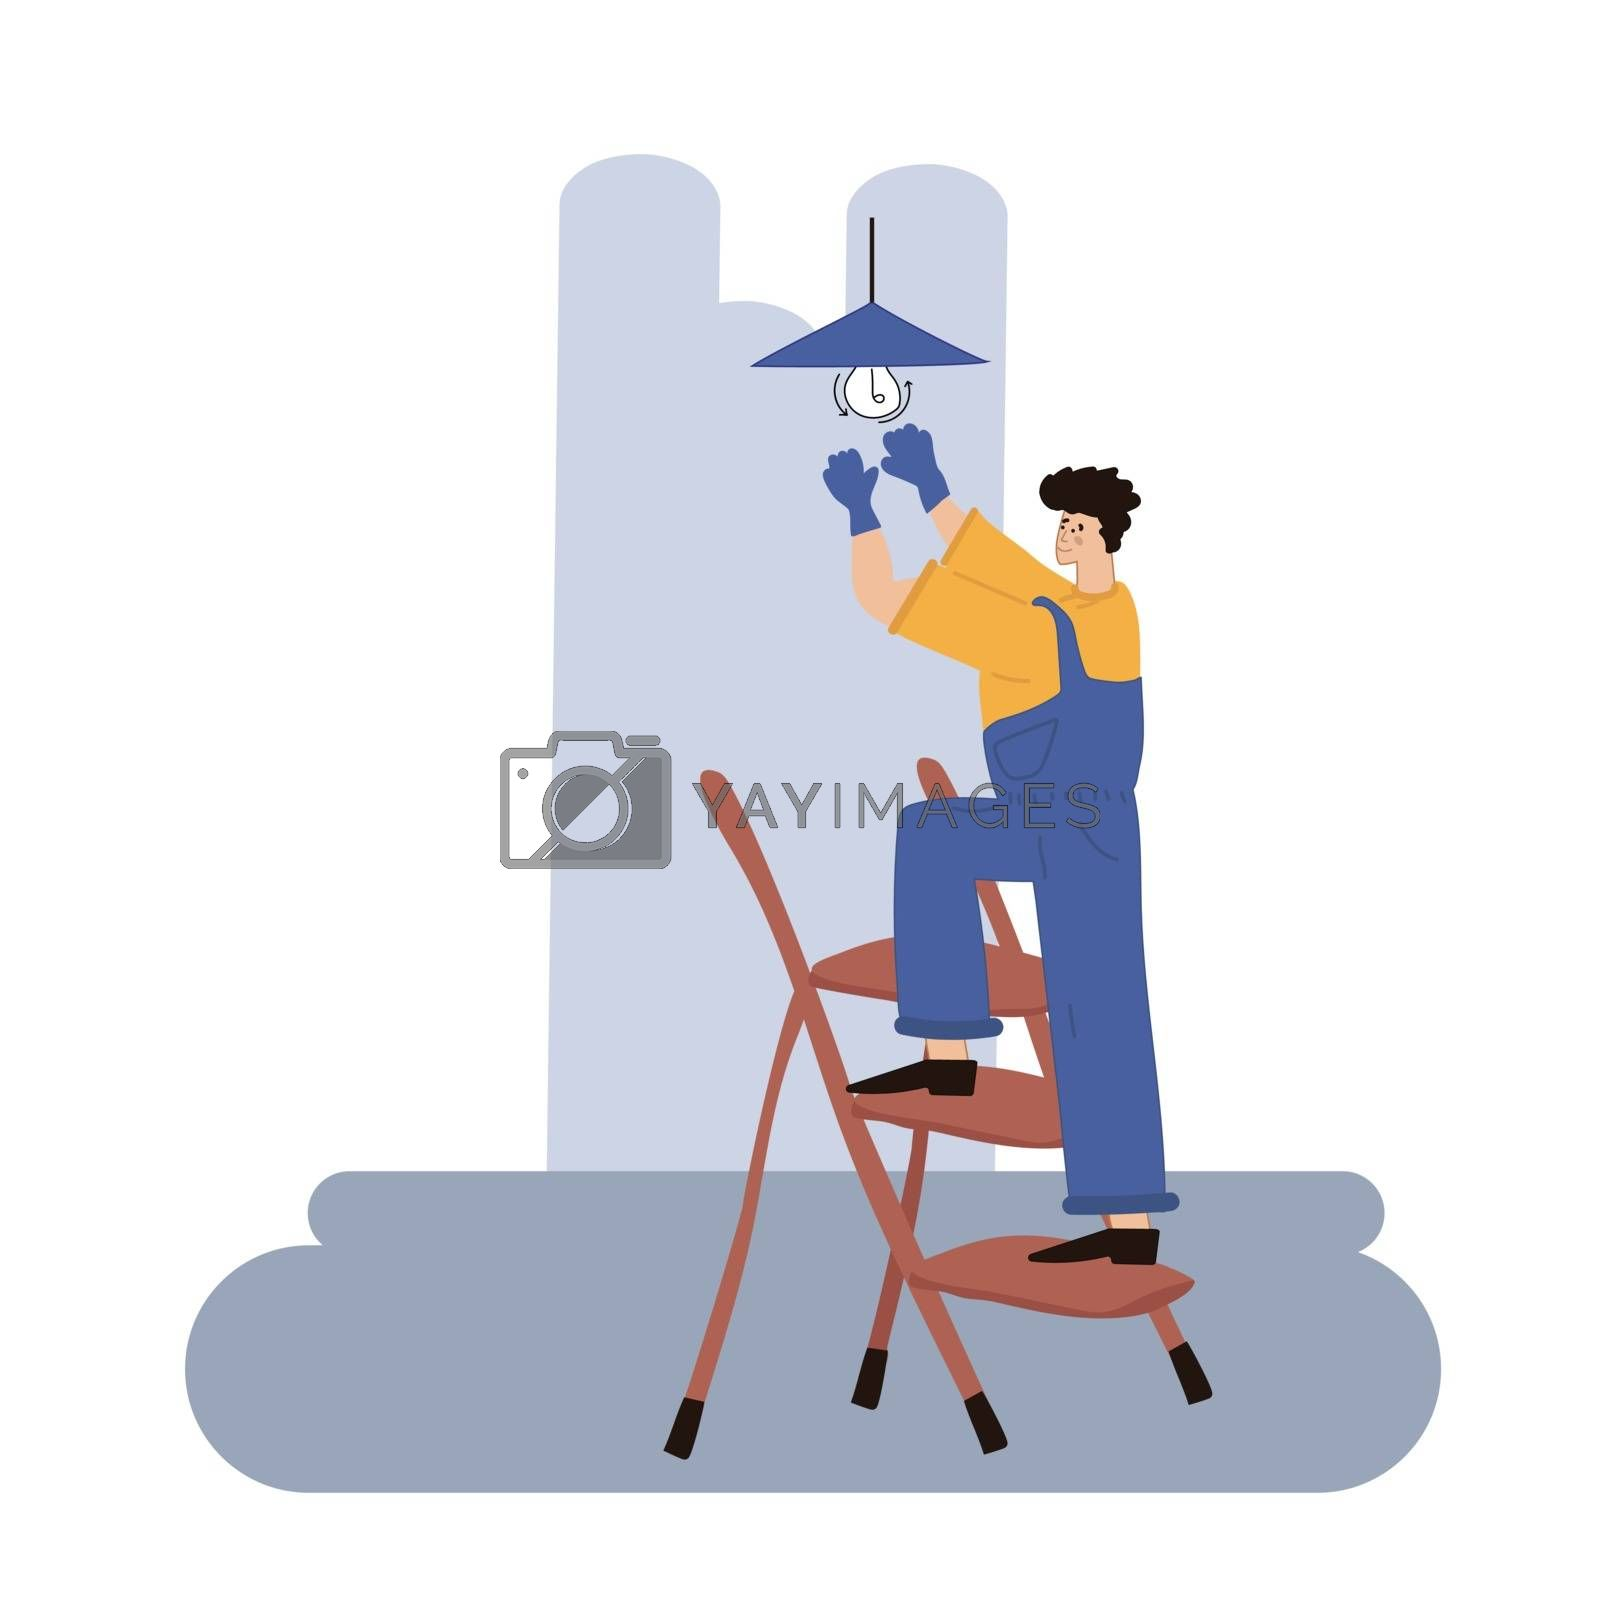 Smiling worker twisting light bulb vector flat design illustration isolated on white background. Electrician on a stepladder. Vector illustration in hand-drawn style